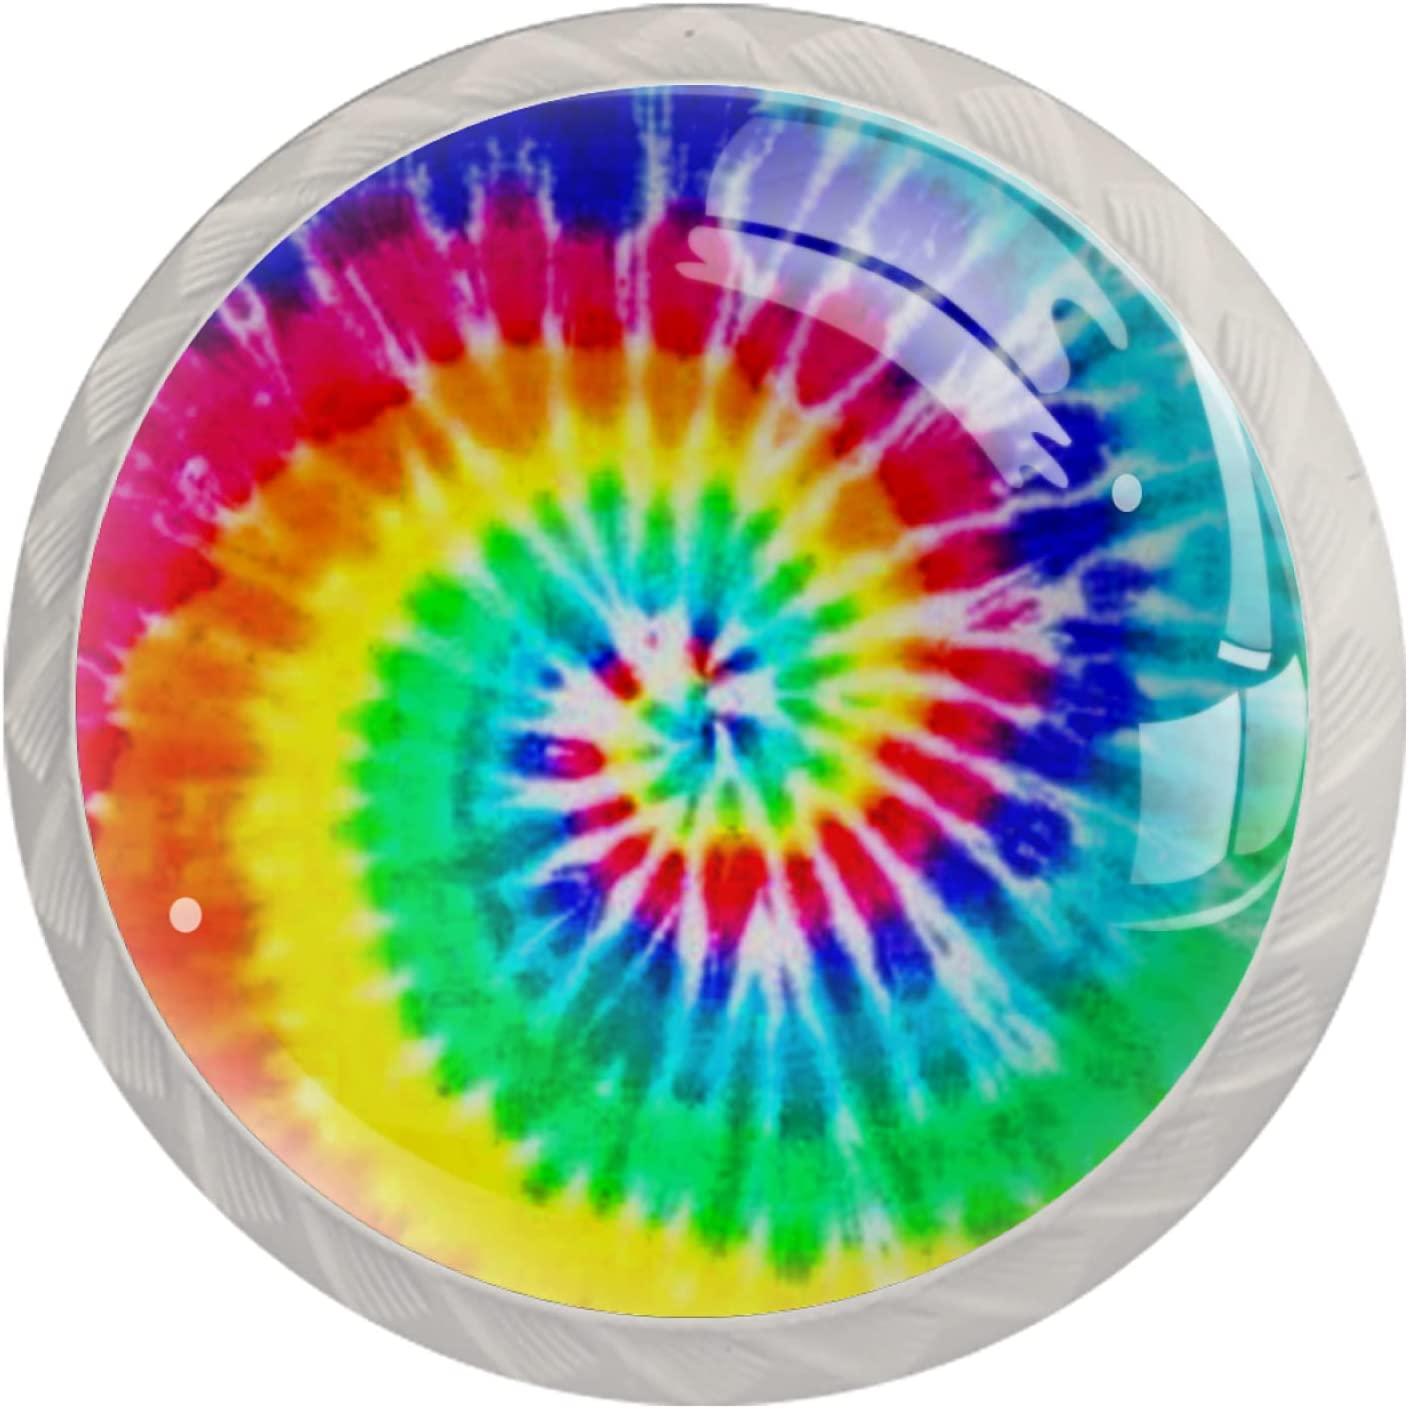 Round Cabinet Hardware Clearance SALE! Limited time! Knob 4 Pack 1 Dye Swirl Rainbow Seasonal Wrap Introduction - Tie